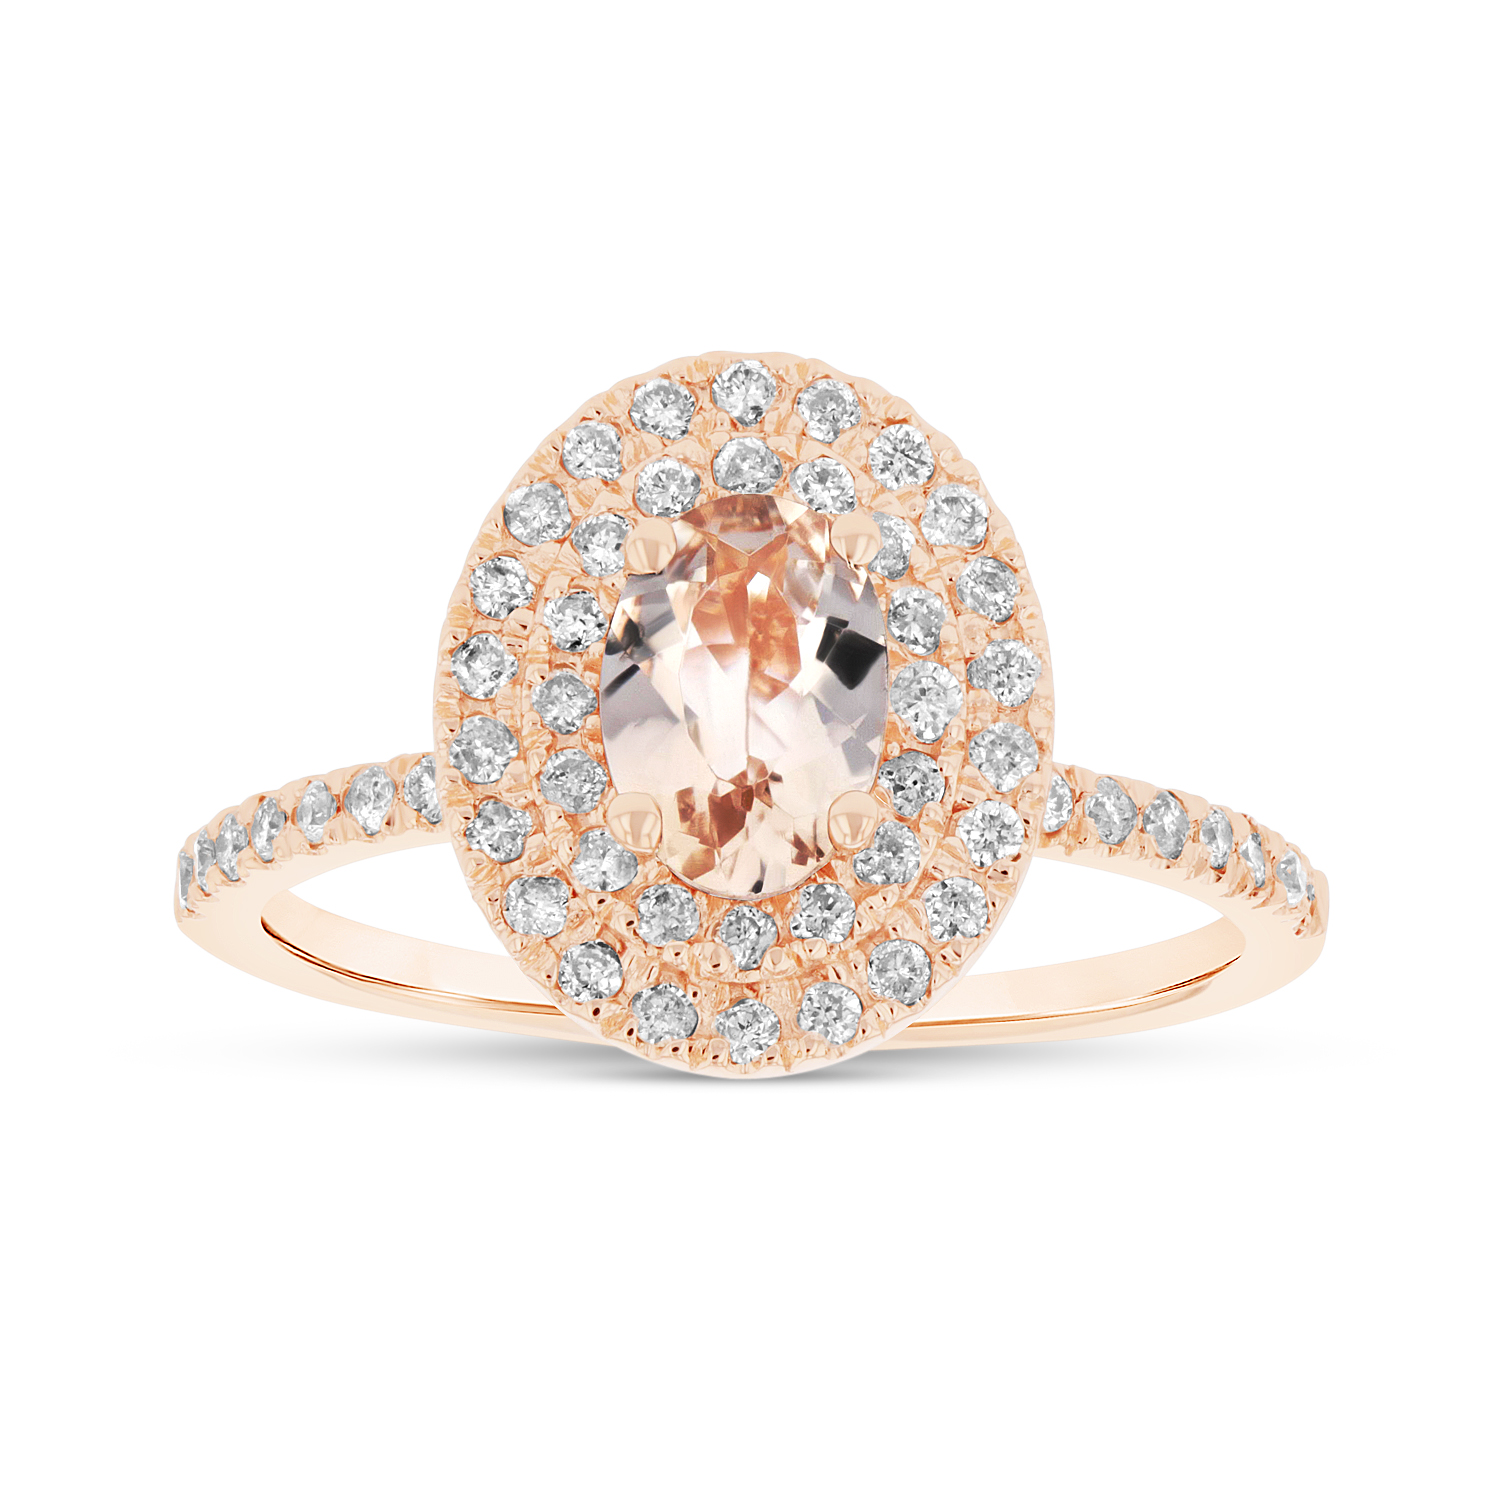 View 7X5 mm Oval Morganite and Diamond Ring in 14k Rose Gold Double Row Halo